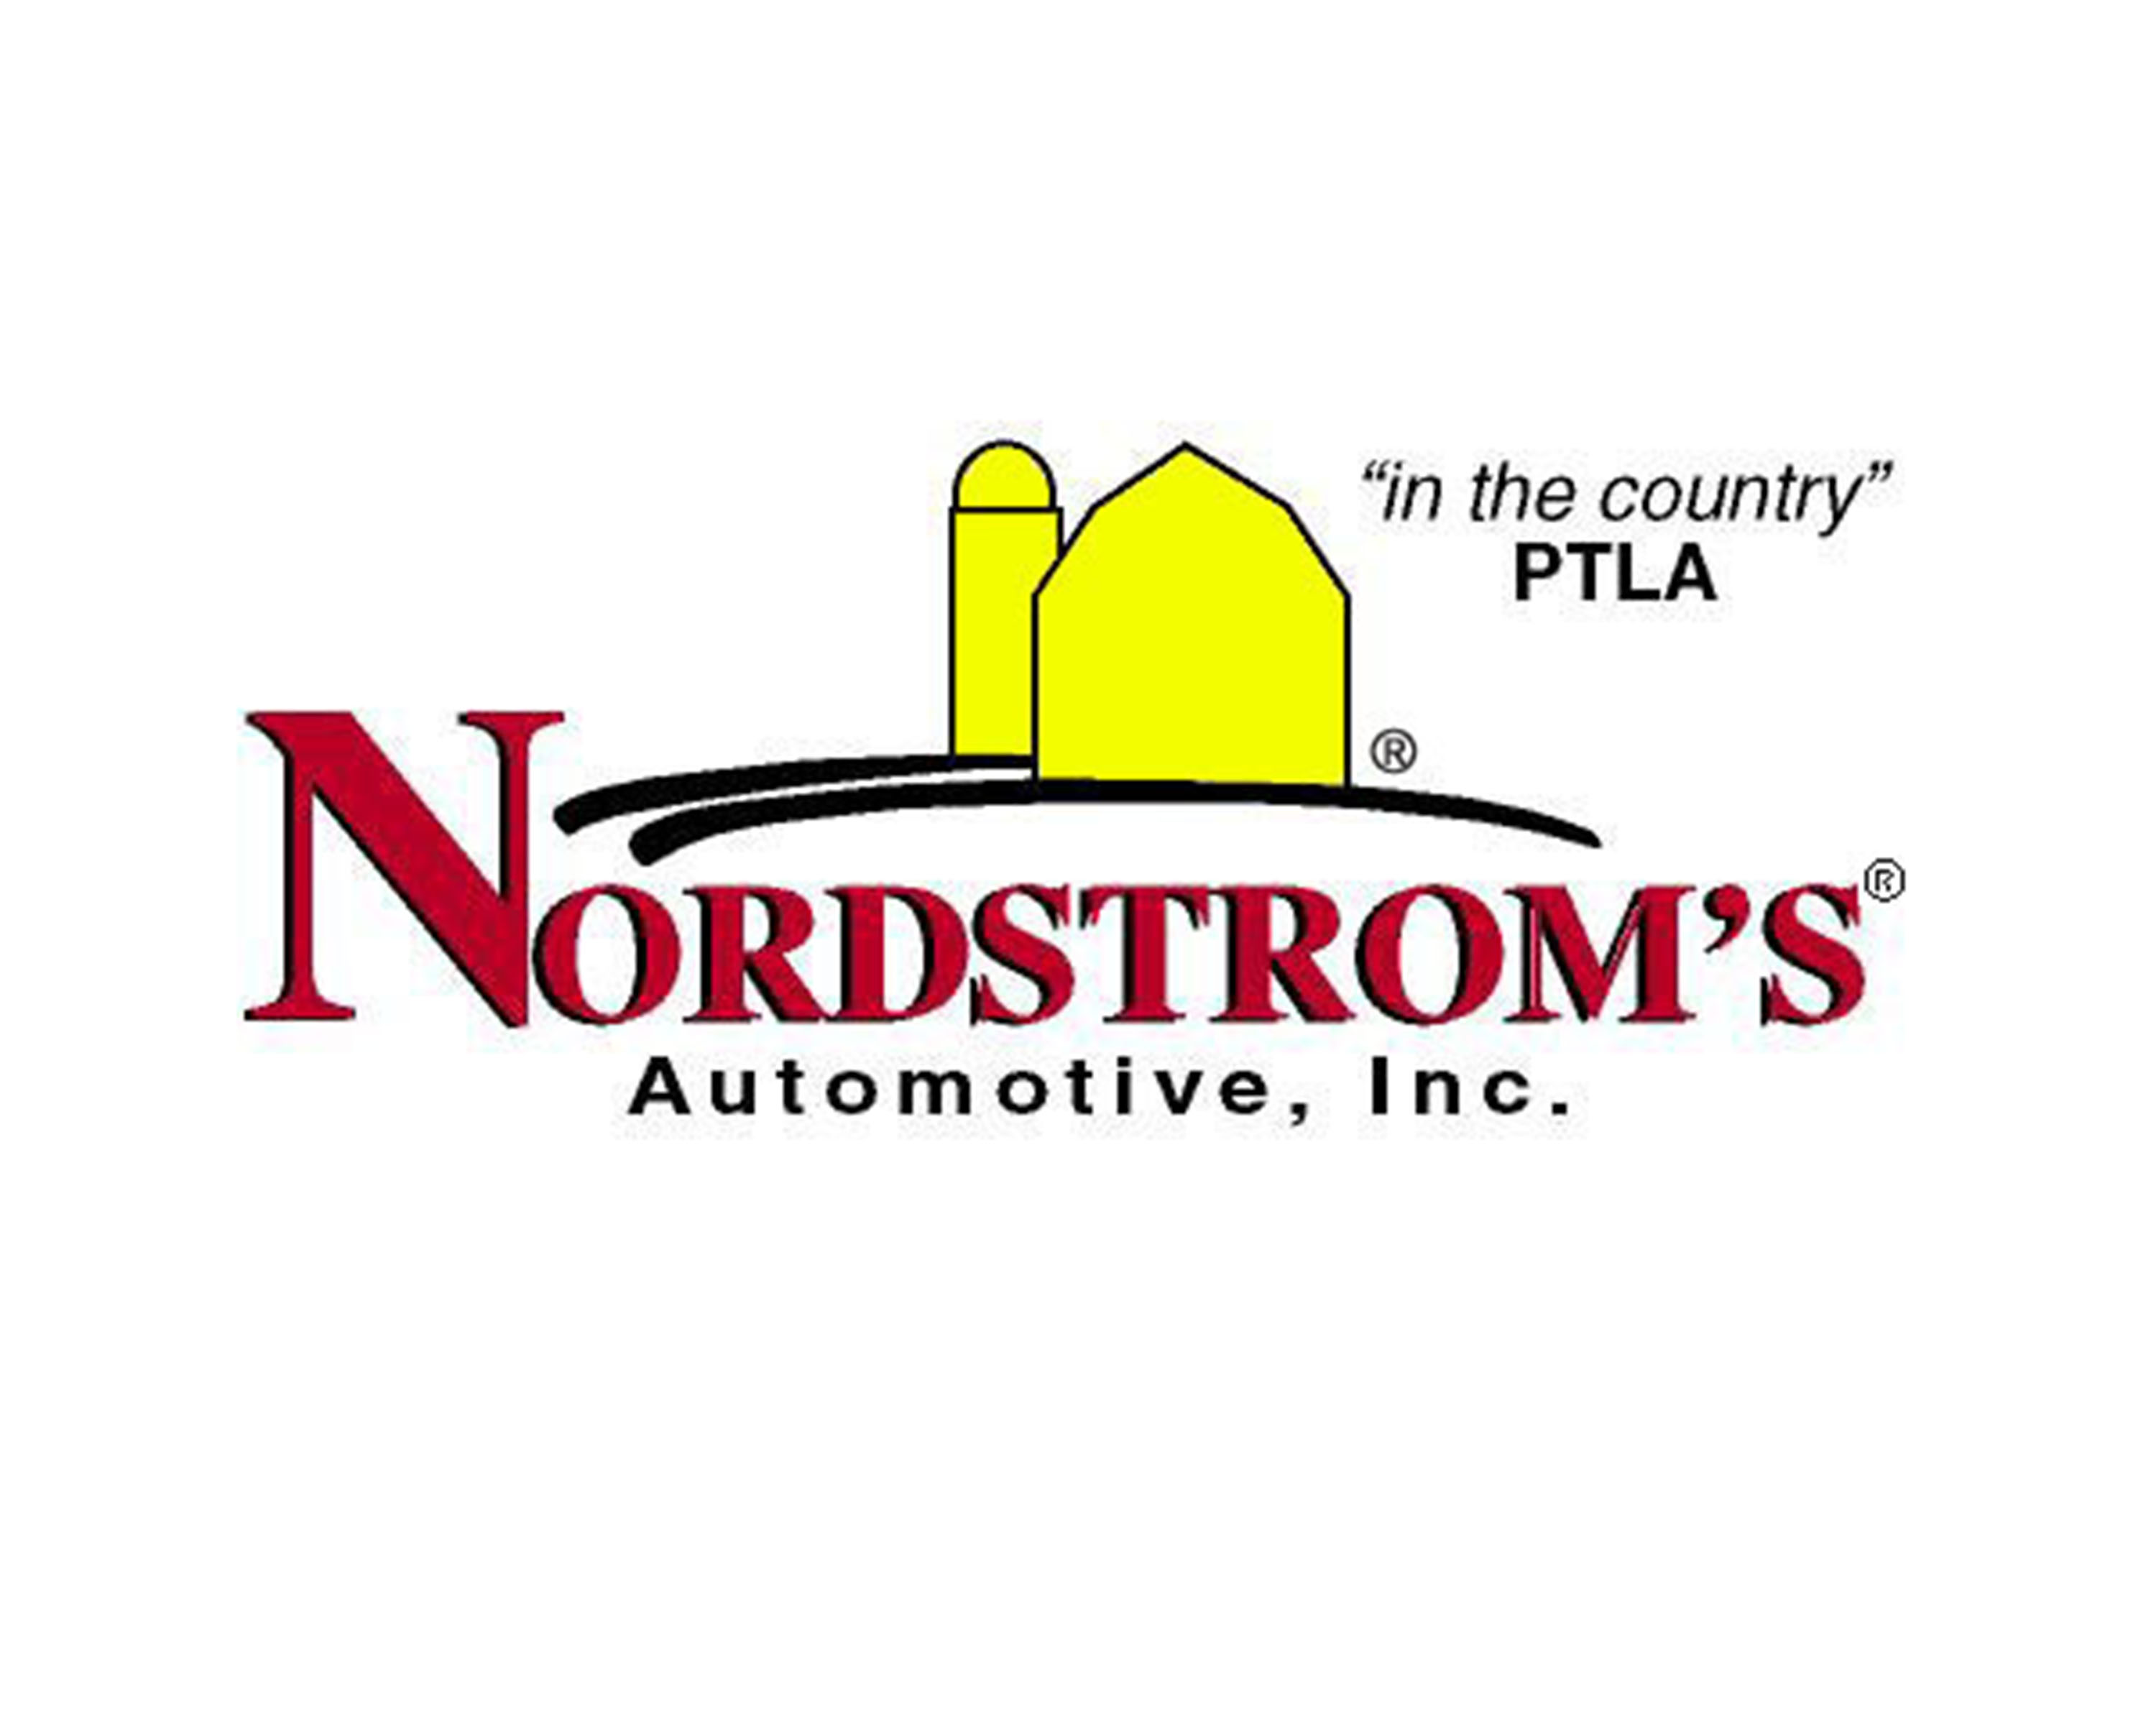 Nordstrom's Automotive